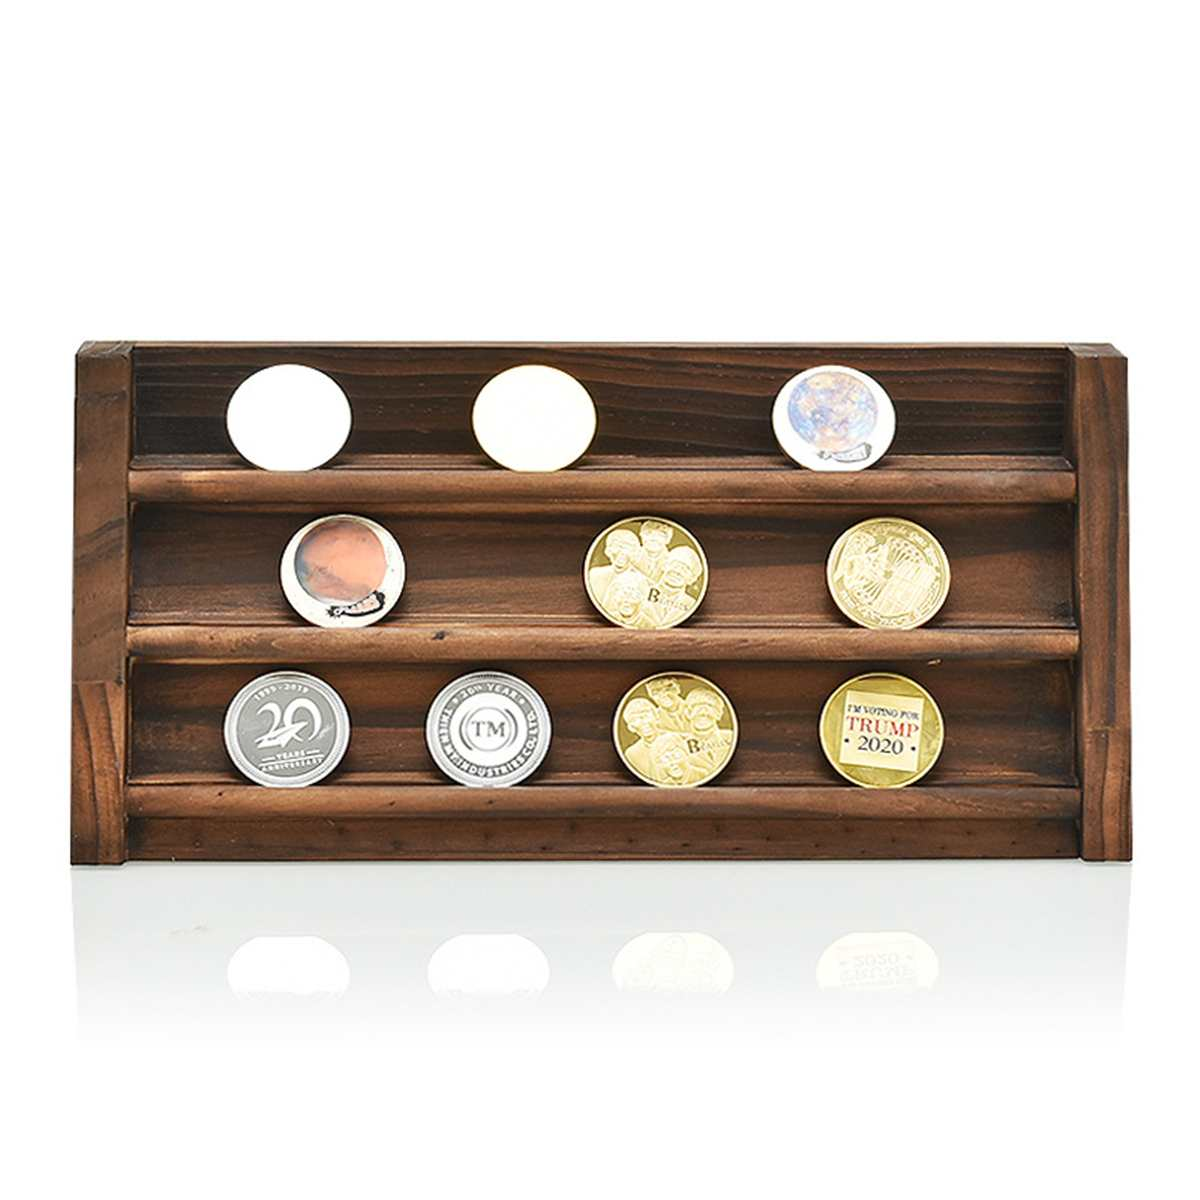 2 Styles Coin Display Stand Coin Case Collector Wooden Coin Storage Shelves Collectible Coins Holder Display Album Coin Case|Decorative Shelves| |  - title=